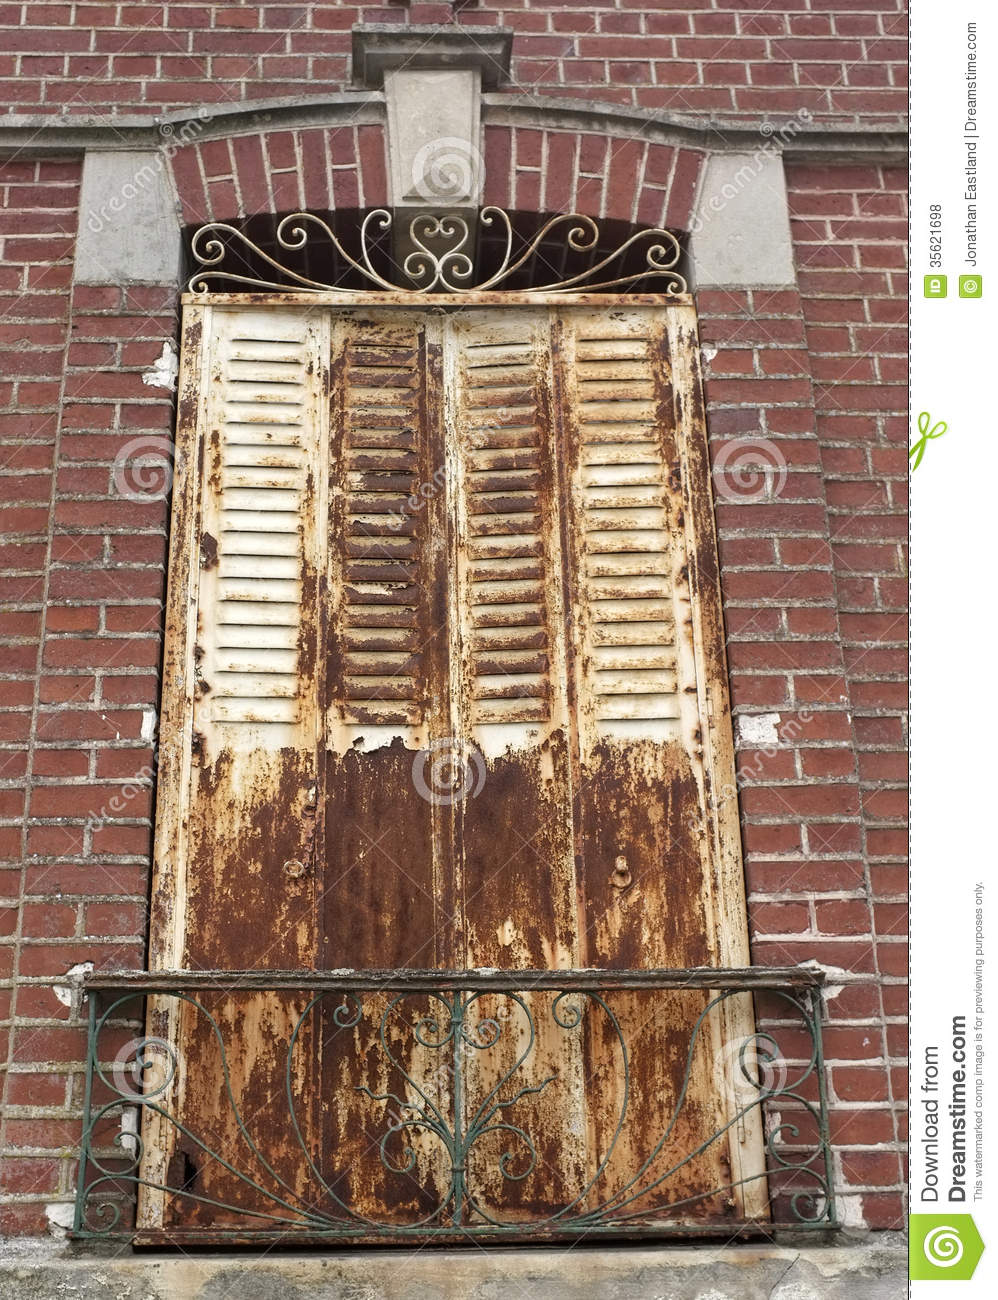 Rusting Metal Window Shutters Stock Photo Image Of